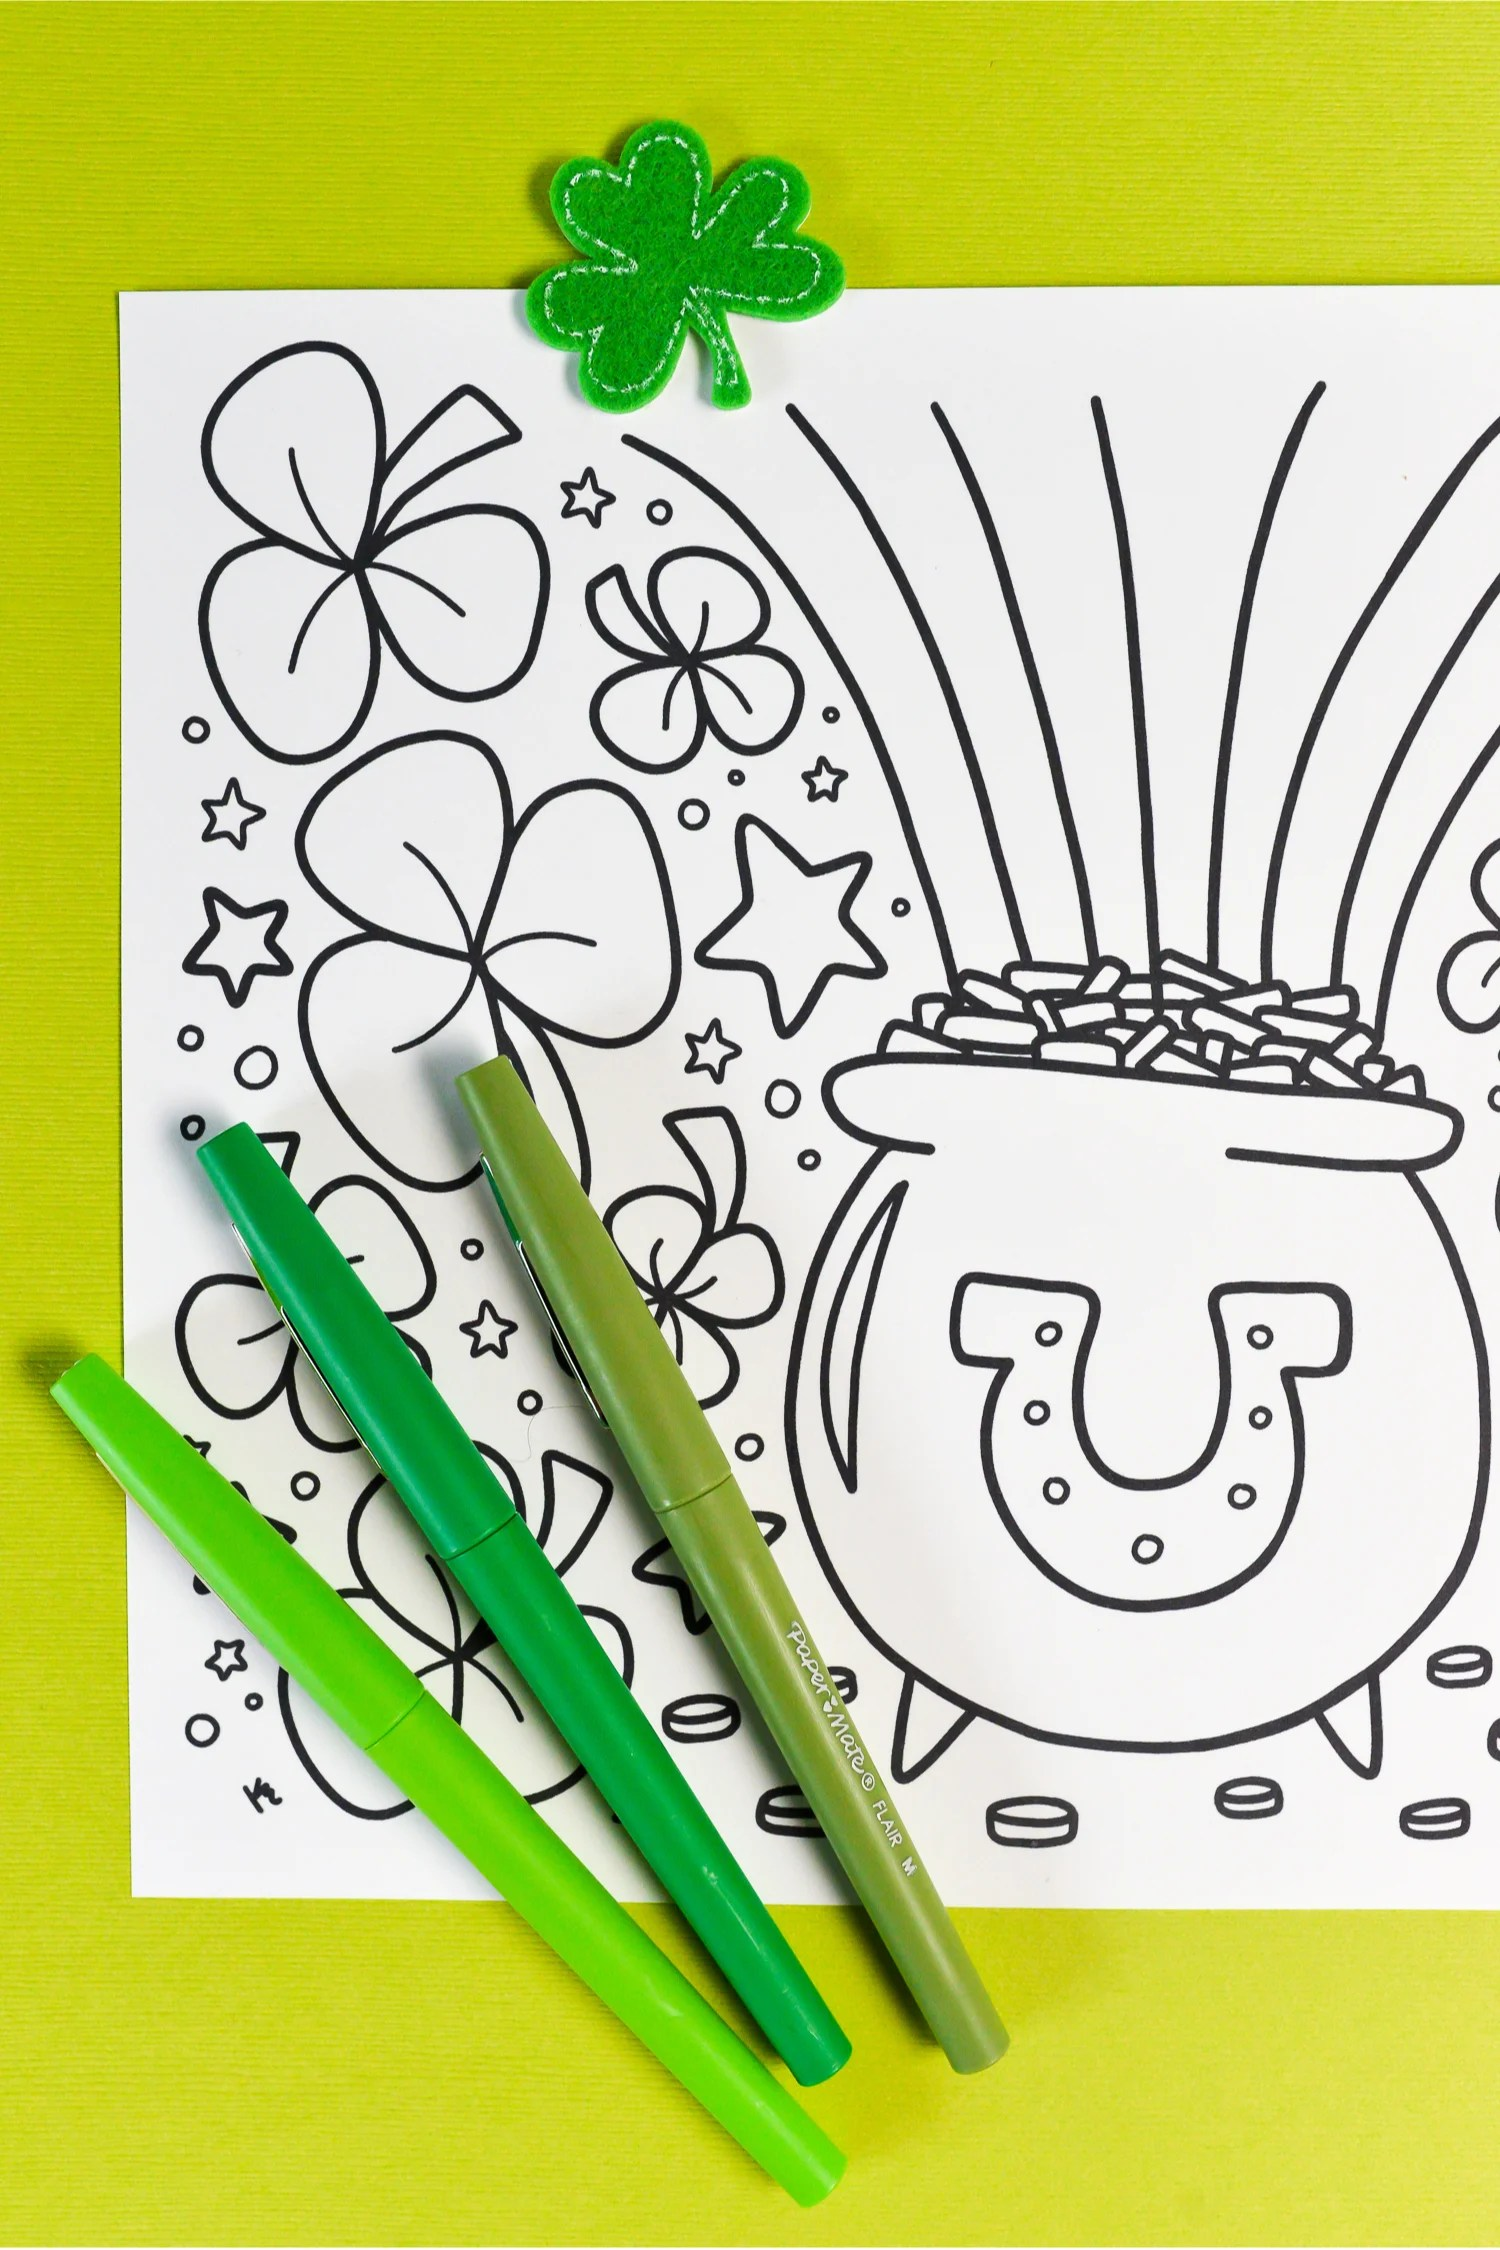 graphic relating to St Patricks Day Printable named Totally free Printable St. Patricks Working day Coloring Website page - Hey, Enables